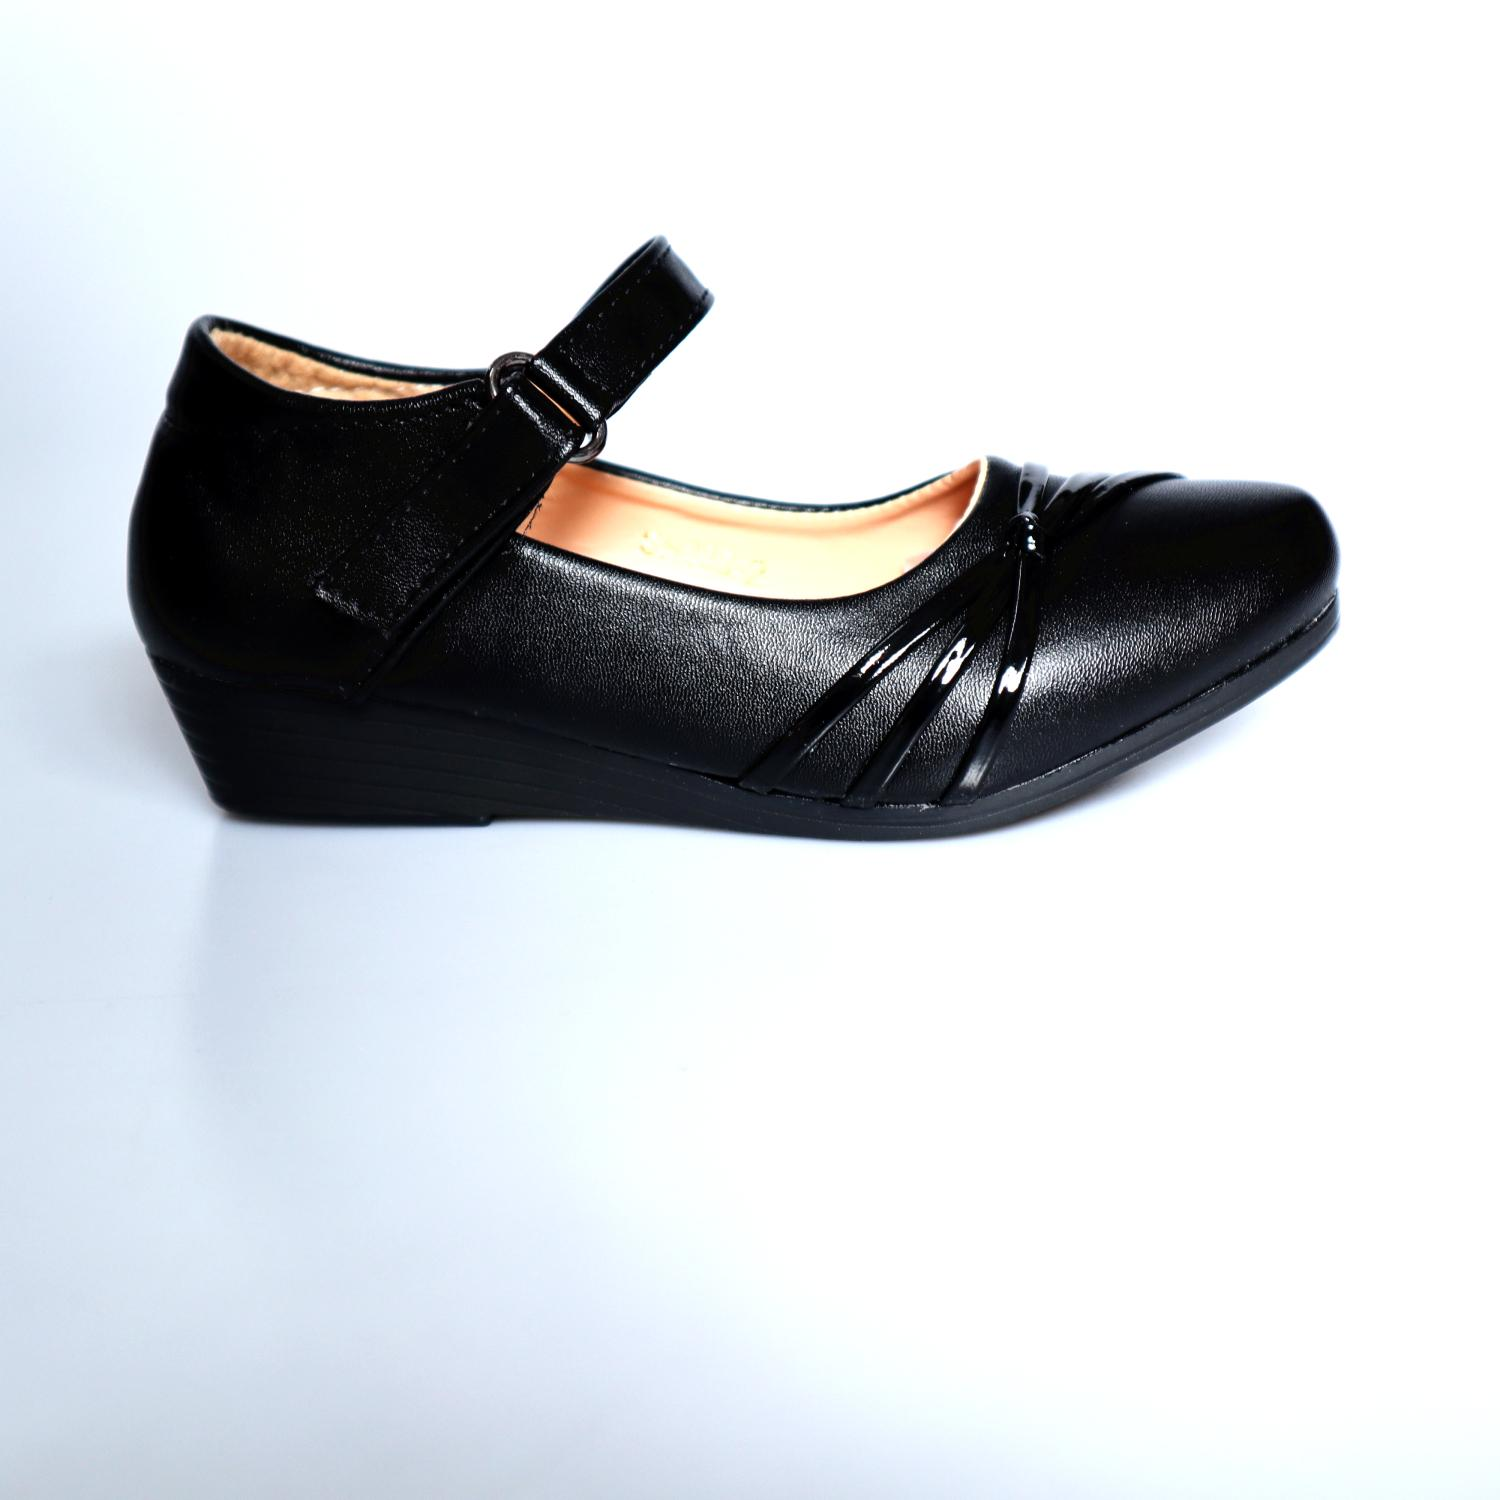 School Black Leather Shoes For Girls(size 24-35 ) By Trendy Queen Shop.